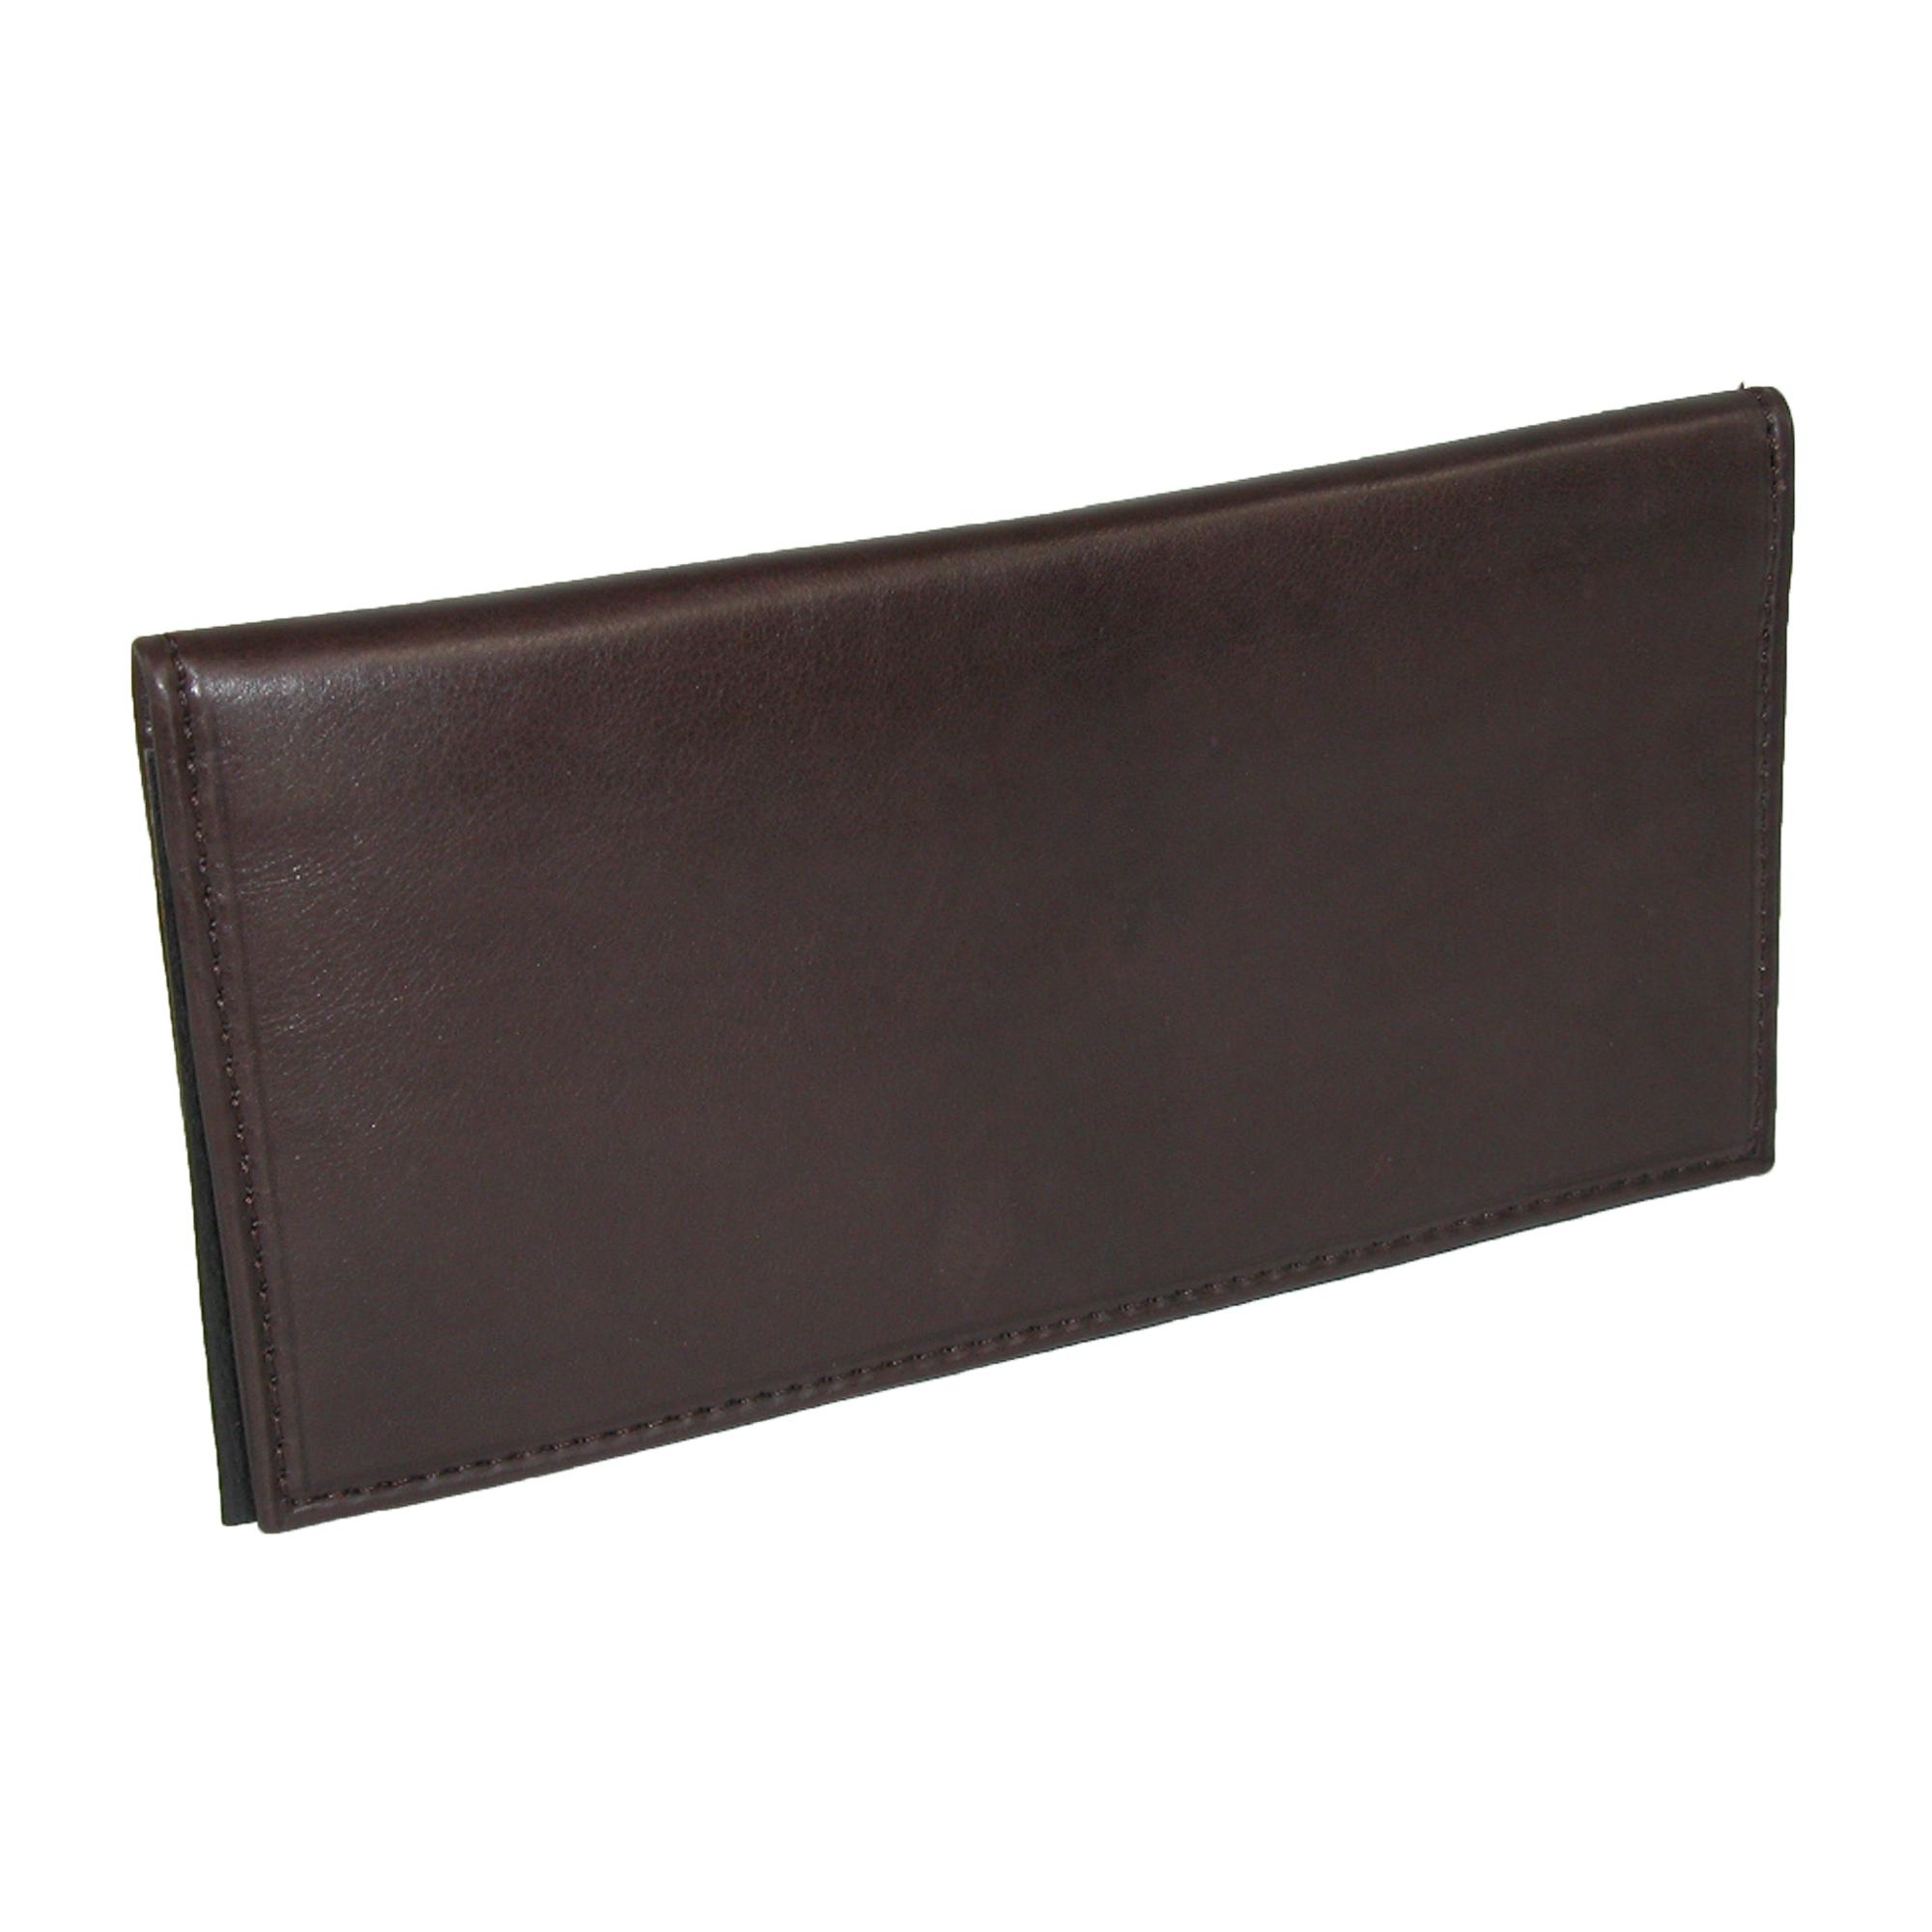 Paul_&_Taylor_Leather_Checkbook_Cover_Wallet_